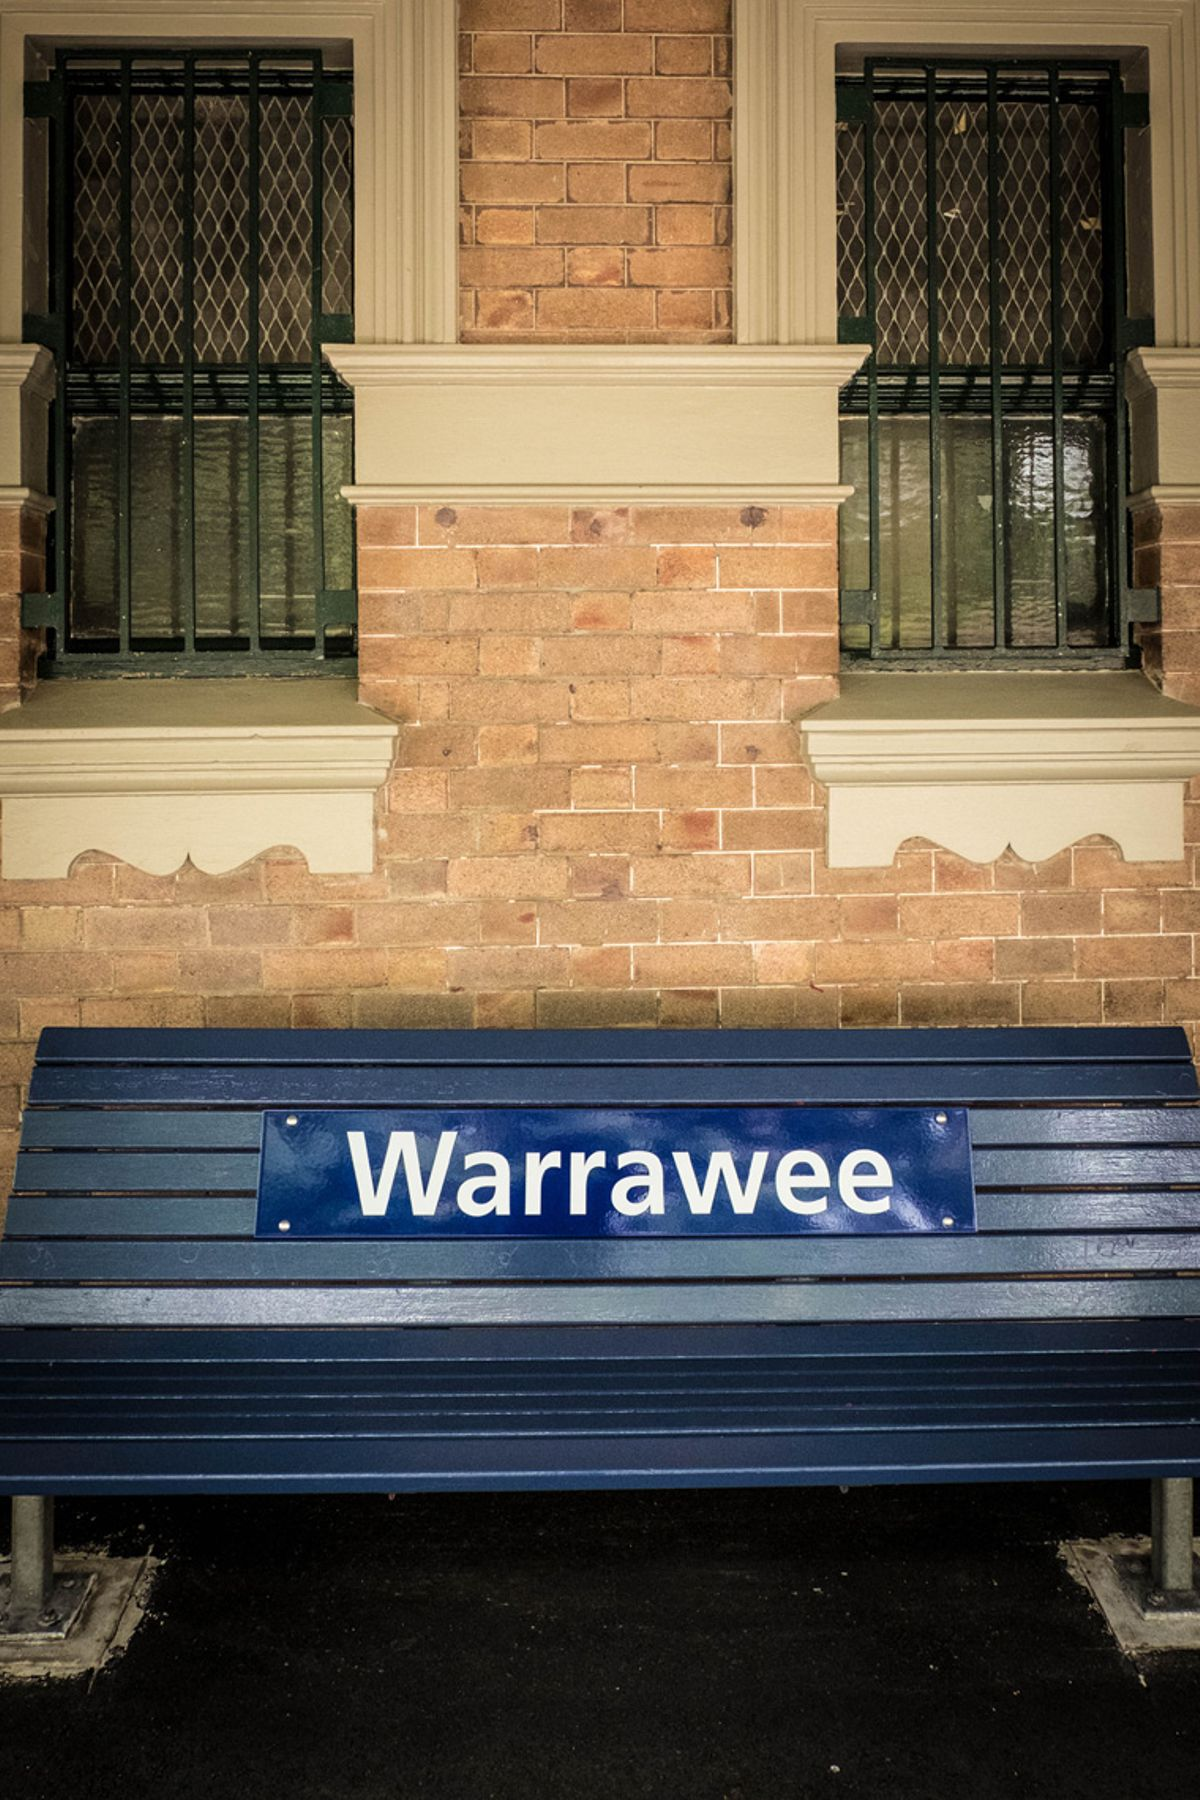 MB - Warrawee - Train Station